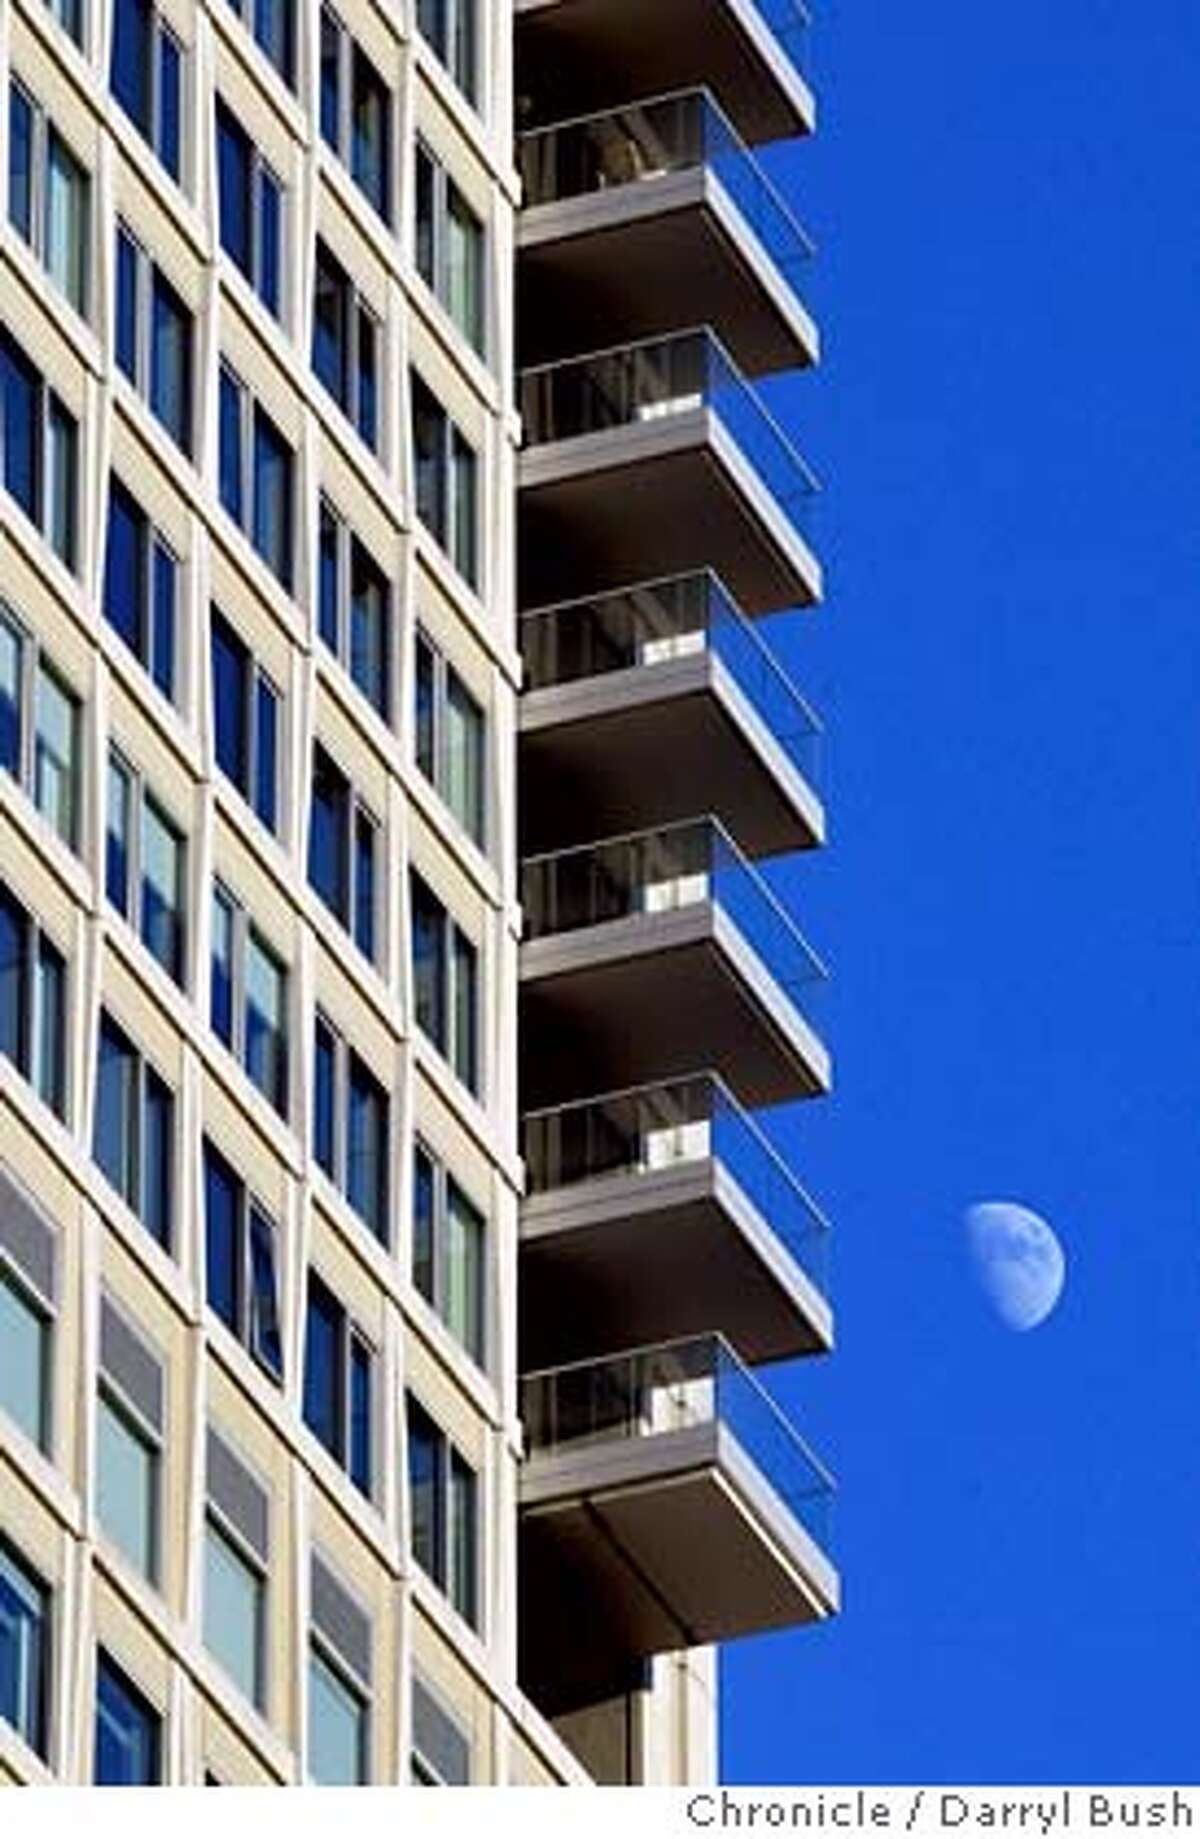 stregis12_0008_db.jpg Balconies near the top of the St. Regis Hotel and Residences at Minna and 3rd Streets. Event on 12/9/05 in San Francisco. Darryl Bush / The Chronicle MANDATORY CREDIT FOR PHOTOG AND SF CHRONICLE/ -MAGS OUT